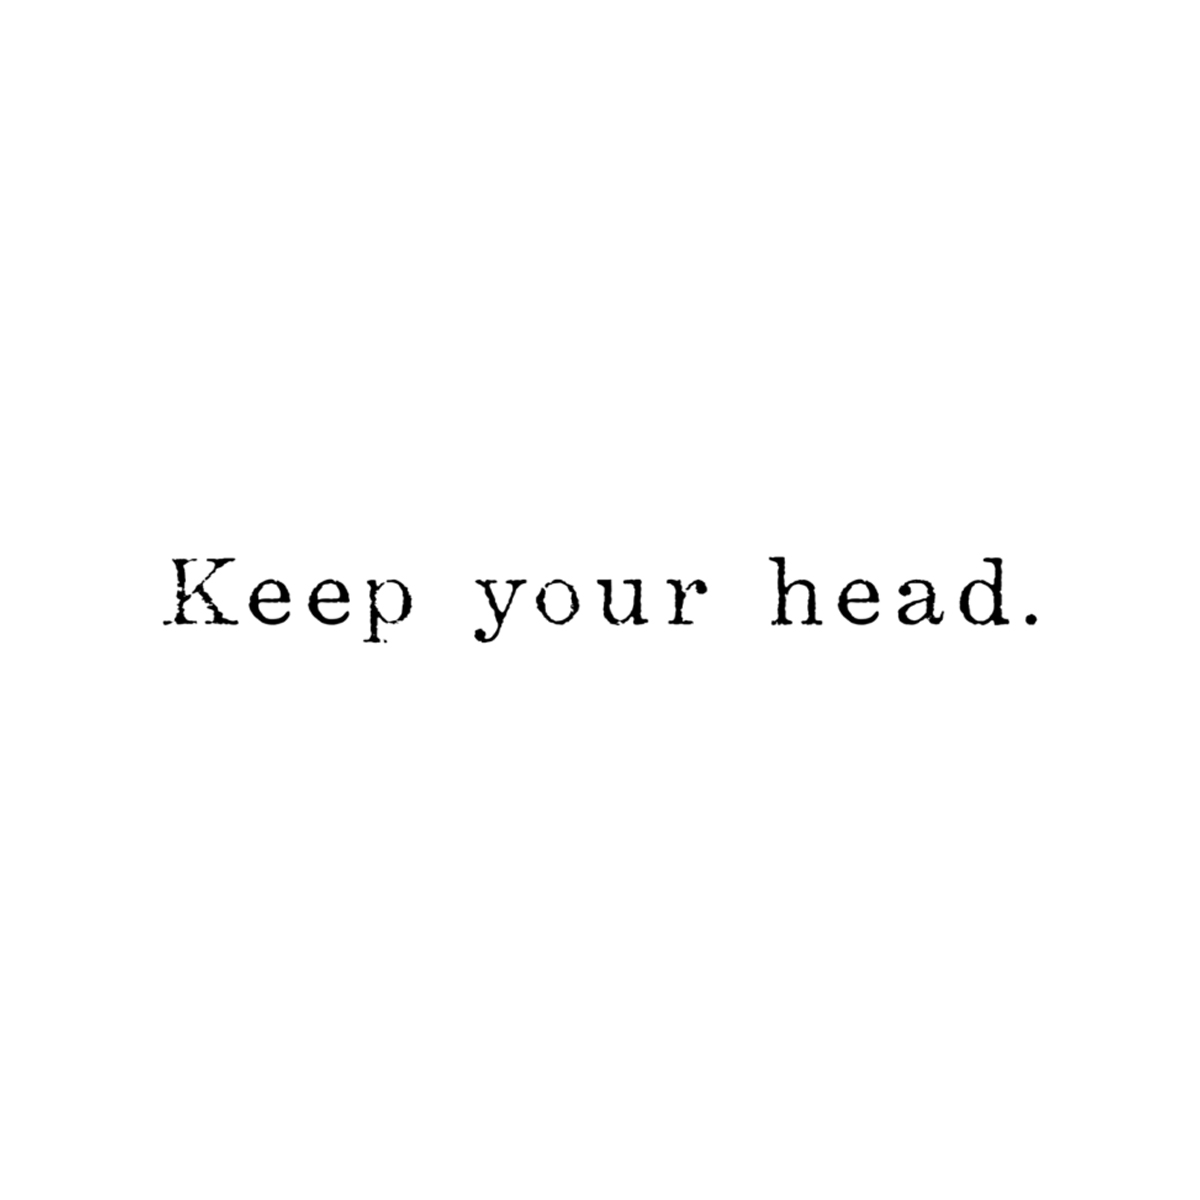 Keep Your Head.jpg